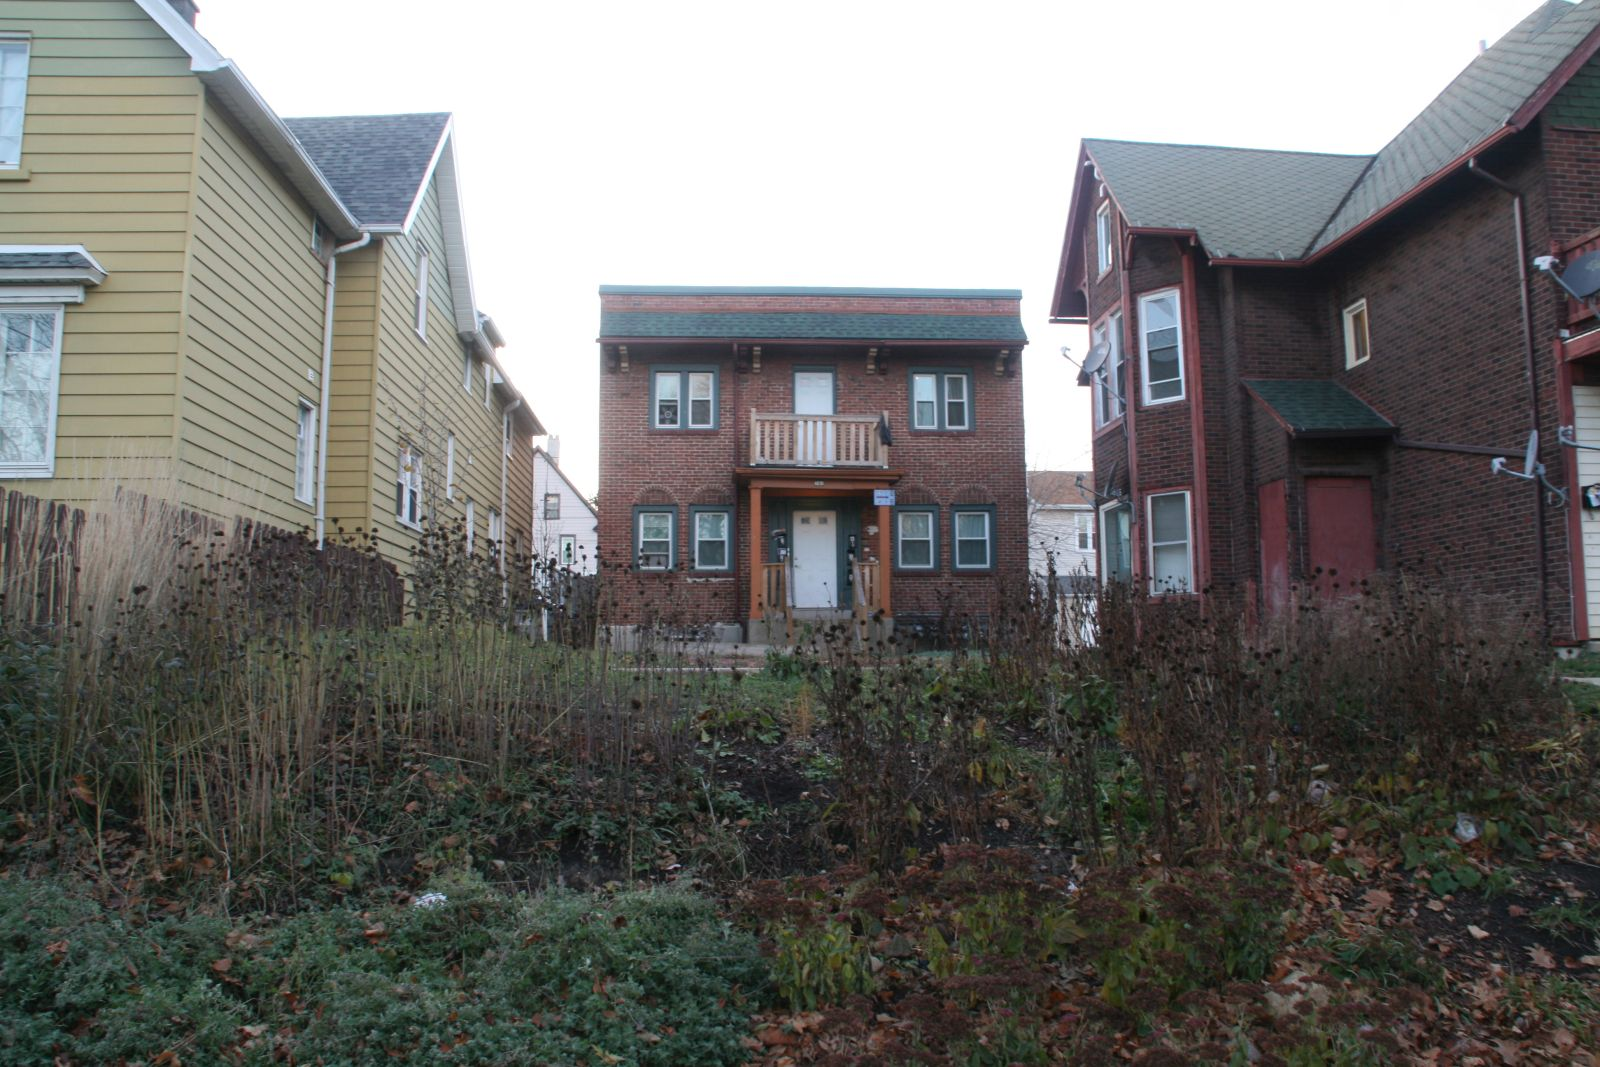 Journey House Rehab at 741 S. 23rd St.